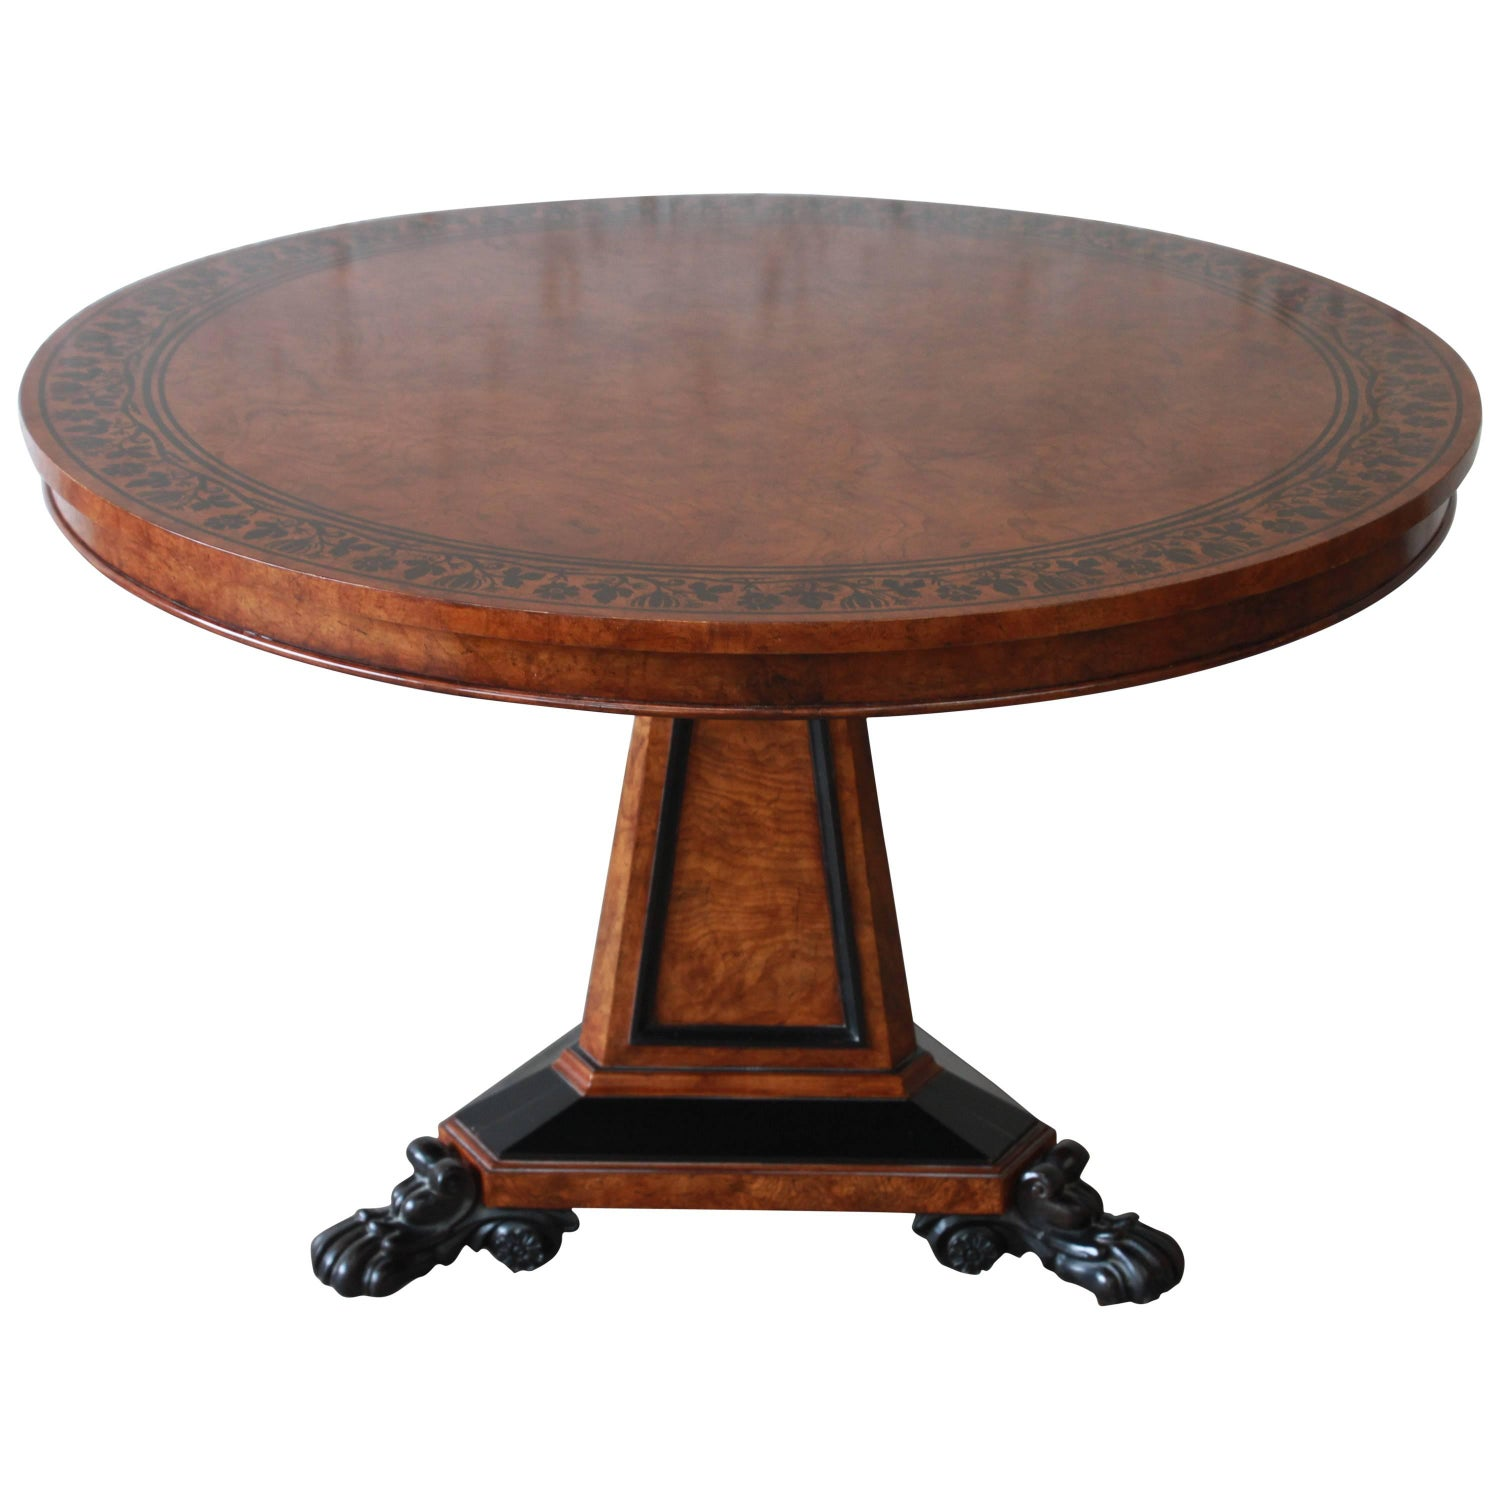 Baker Furniture Stately Homes Collection Burl Ash Regency Centre Table 12995 Quality Antique Mahogany Inlaid Round